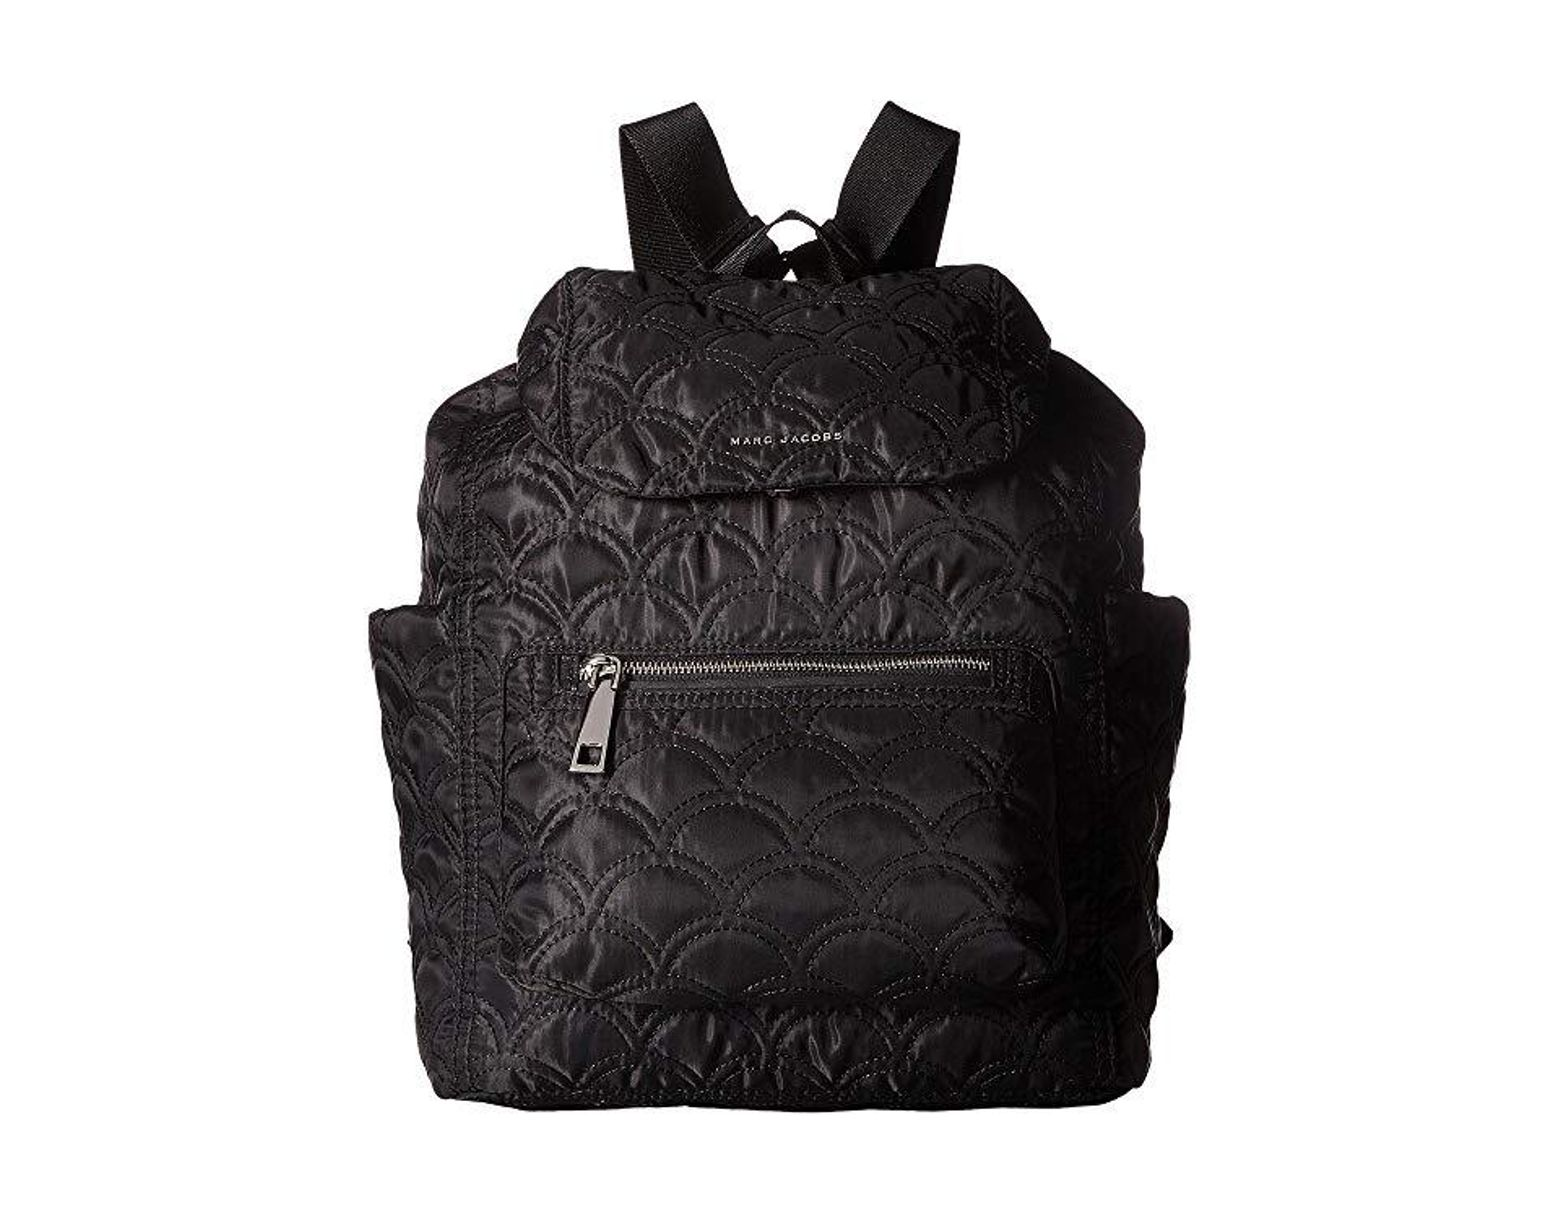 2a147f0cc Marc Jacobs Easy Matelasse Backpack (black) Backpack Bags in Black - Save  16% - Lyst